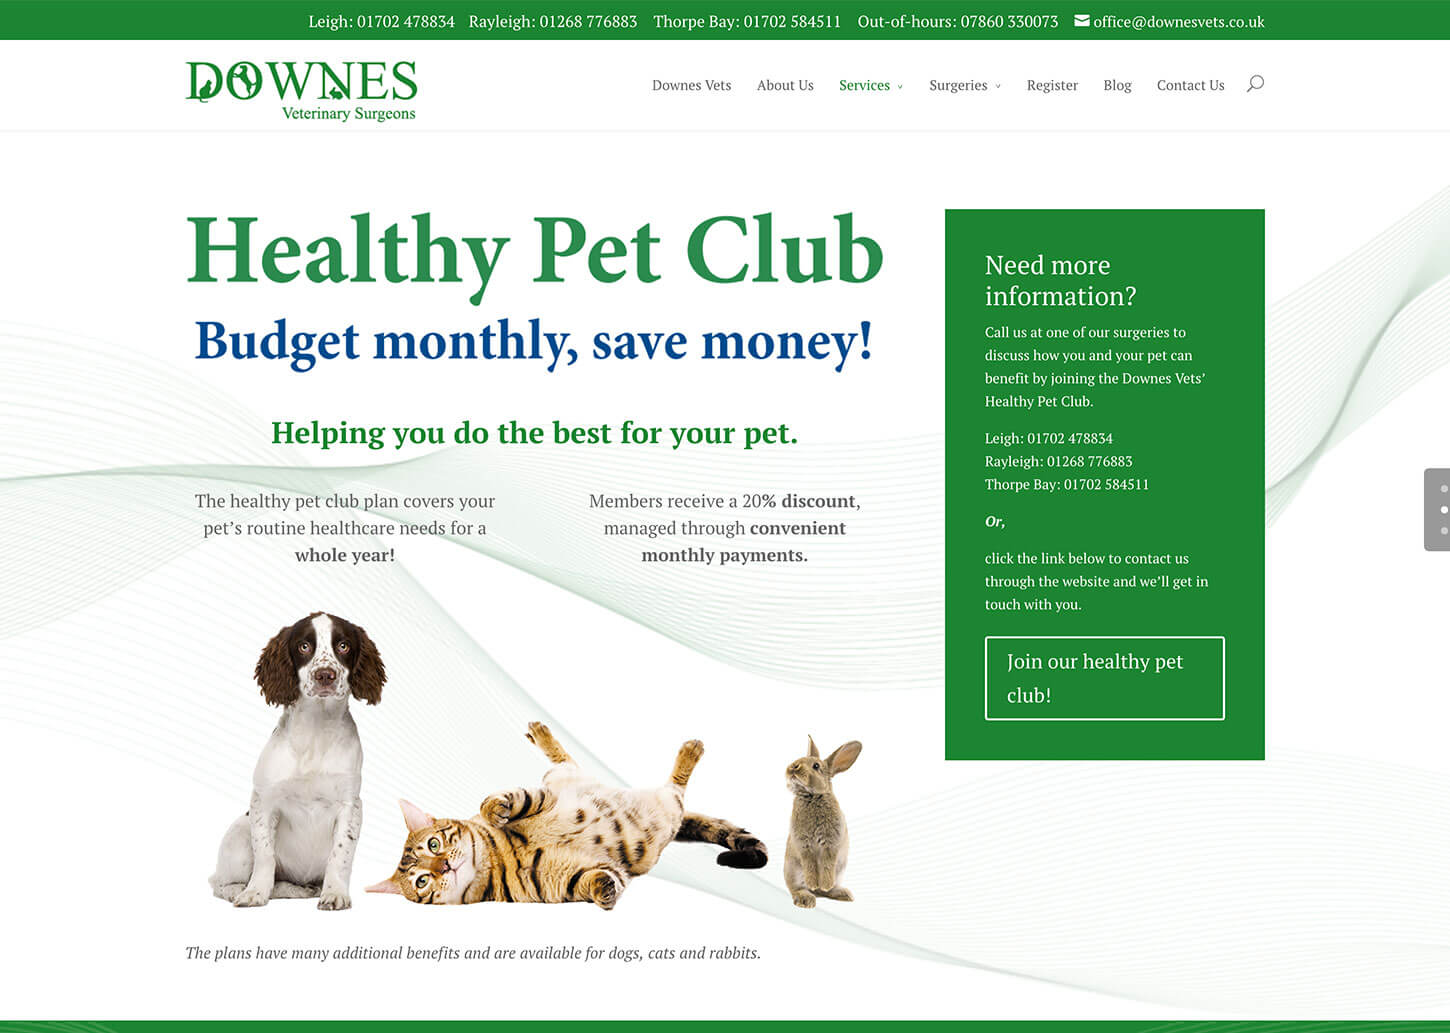 Vets website design for Downes Vets: Healthy pet club